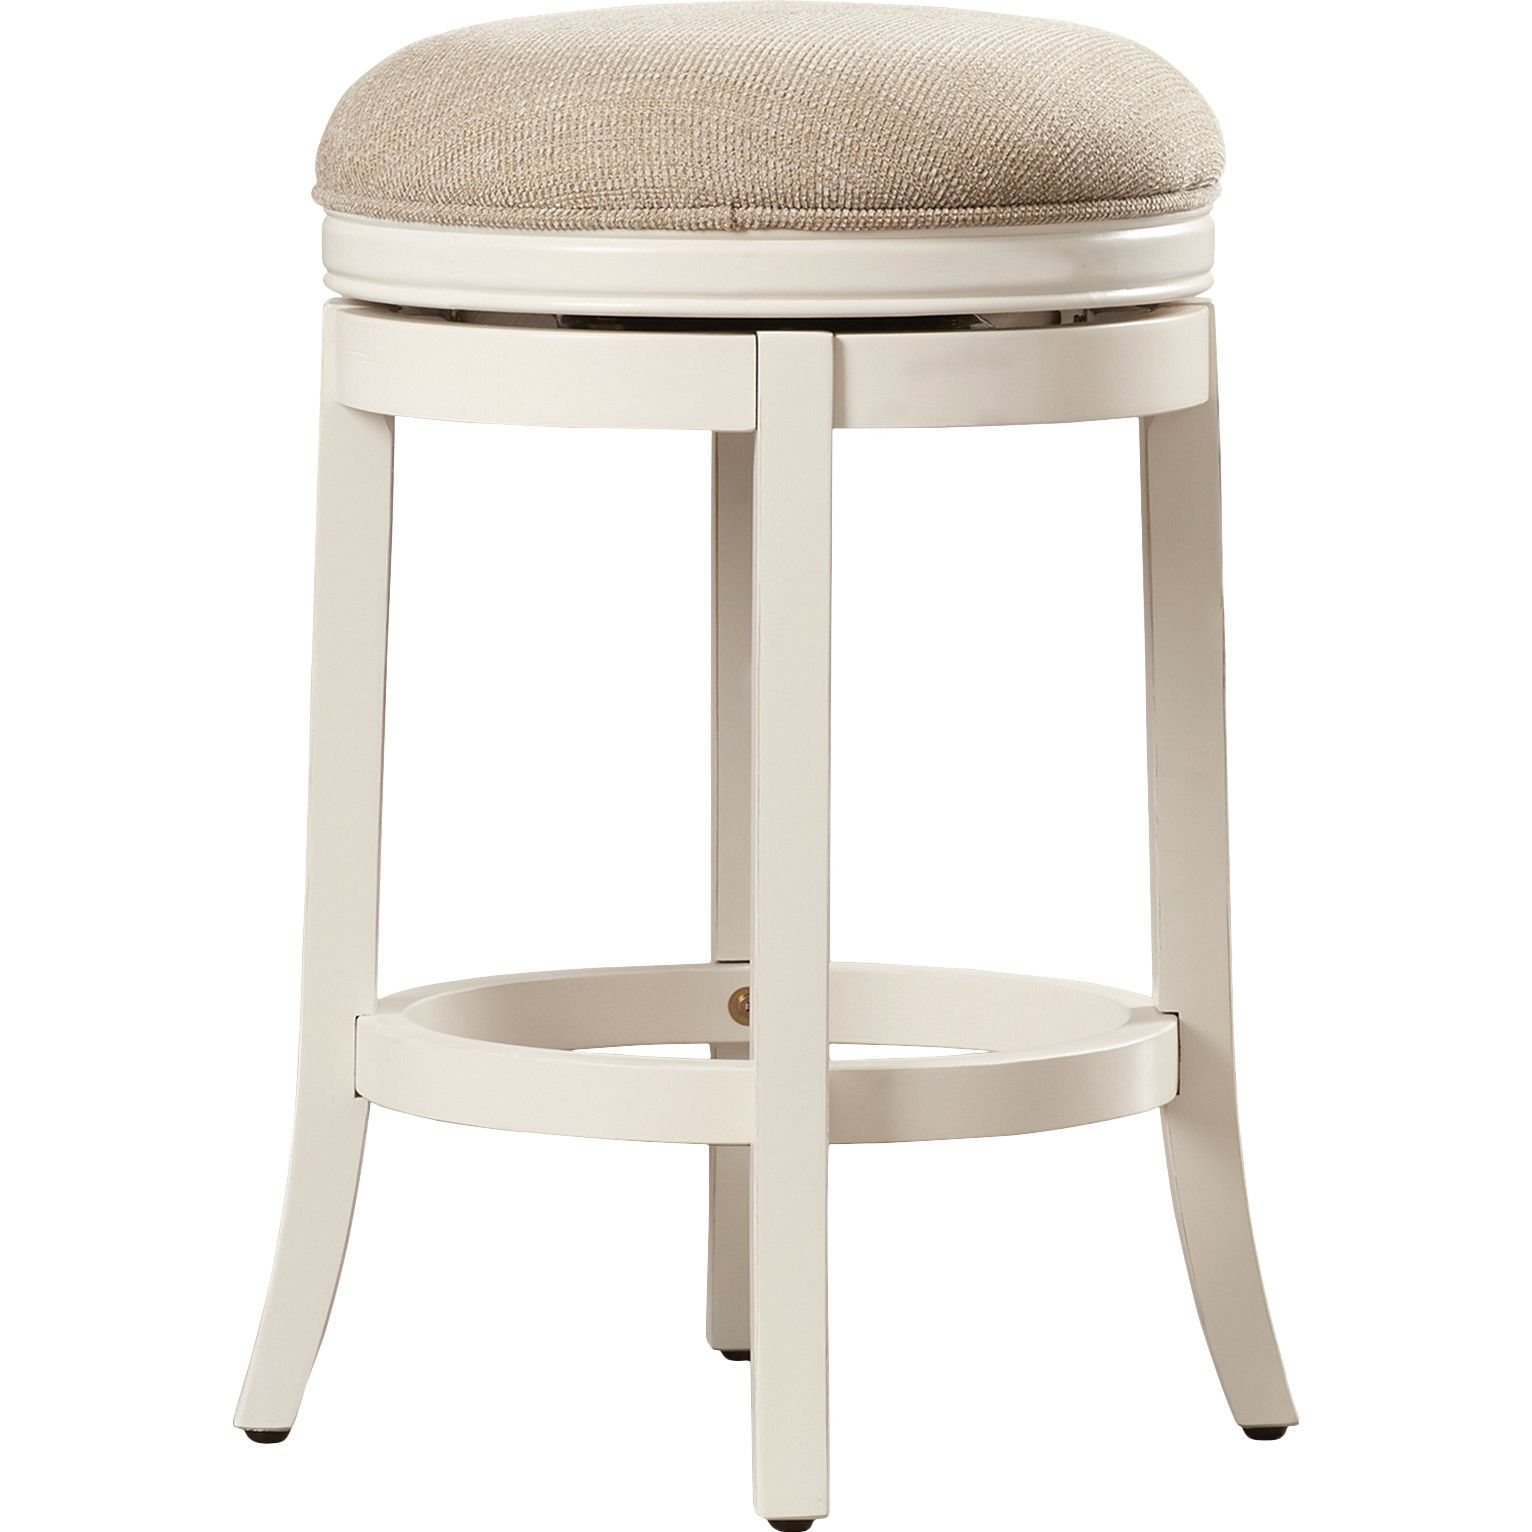 Tremendous Rochefort 26 Swivel Bar Stool Shopping Home Swivel Bar Ocoug Best Dining Table And Chair Ideas Images Ocougorg